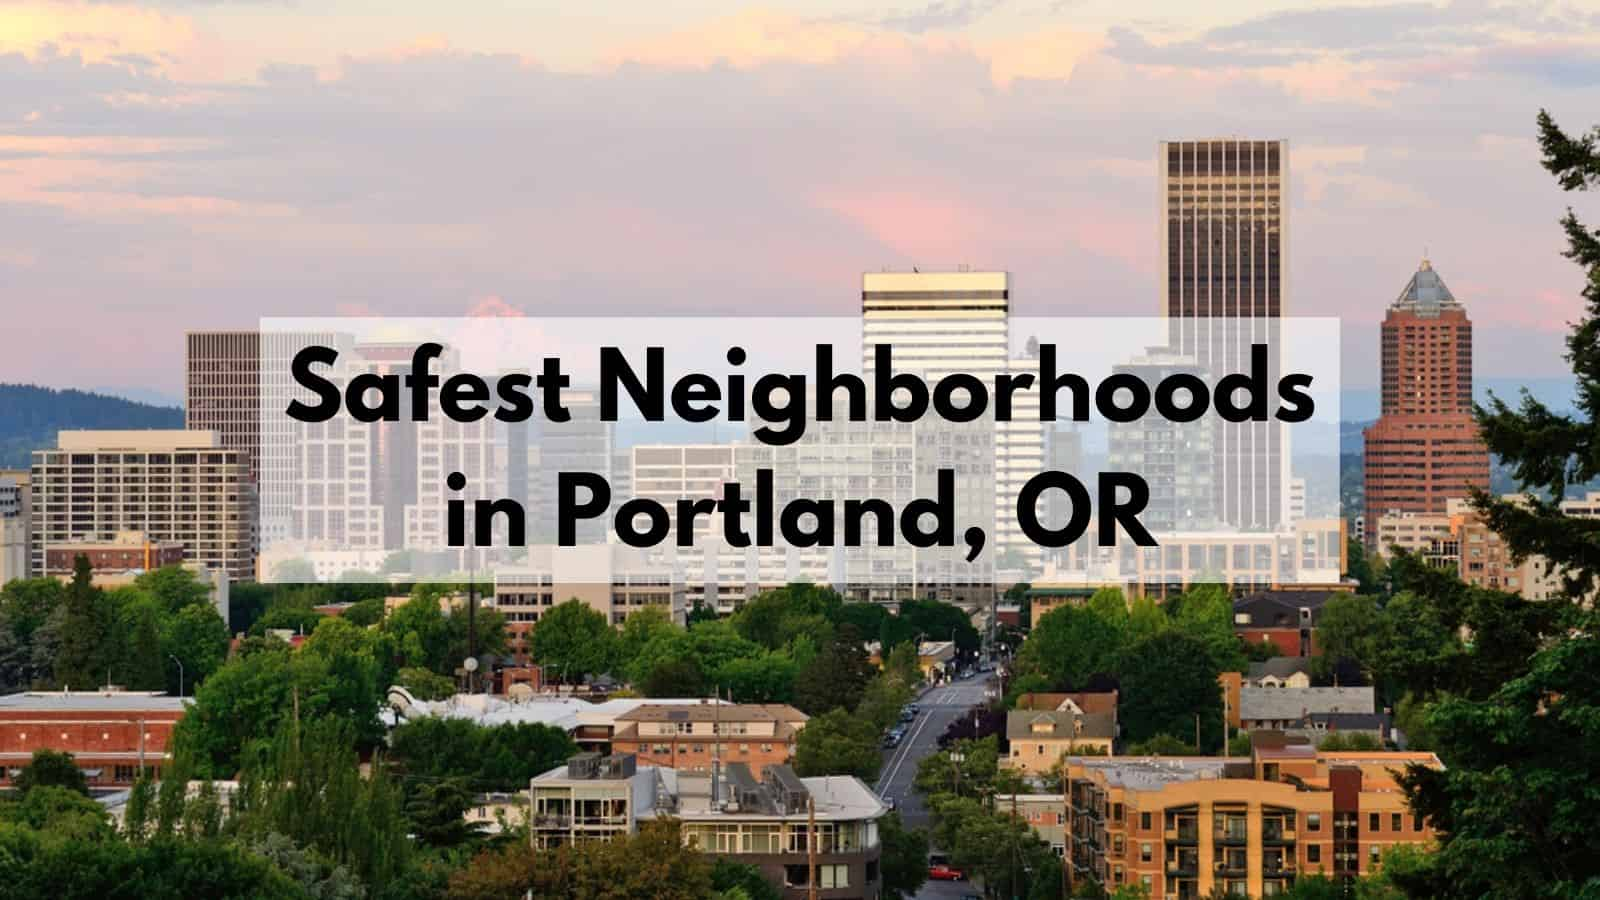 Safest Neighborhoods in Portland, OR